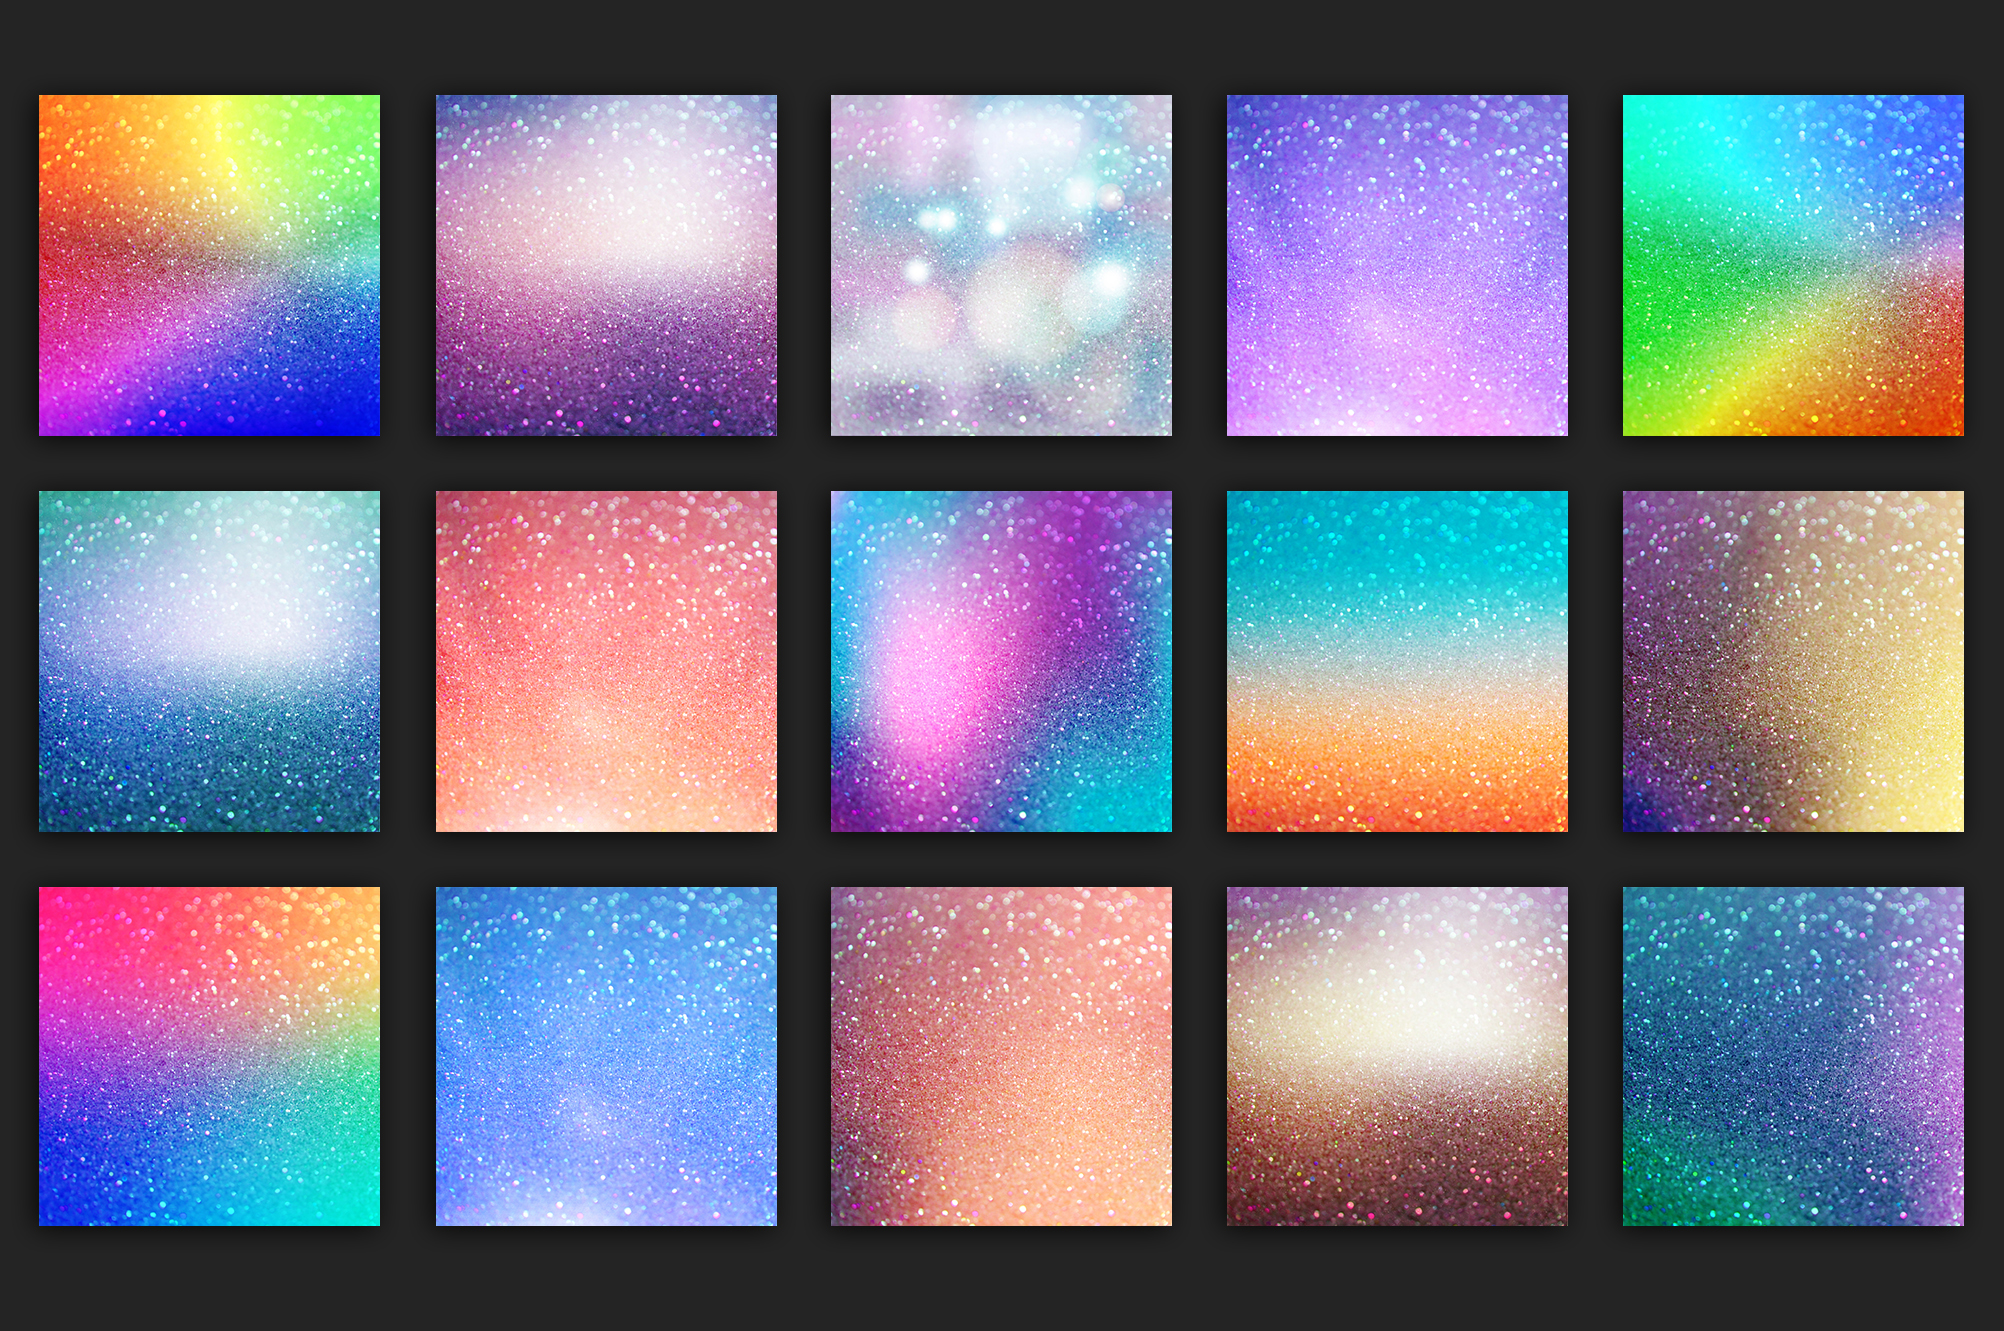 Iridescent 95 Glitter Textures Holographic Backgrounds example image 11